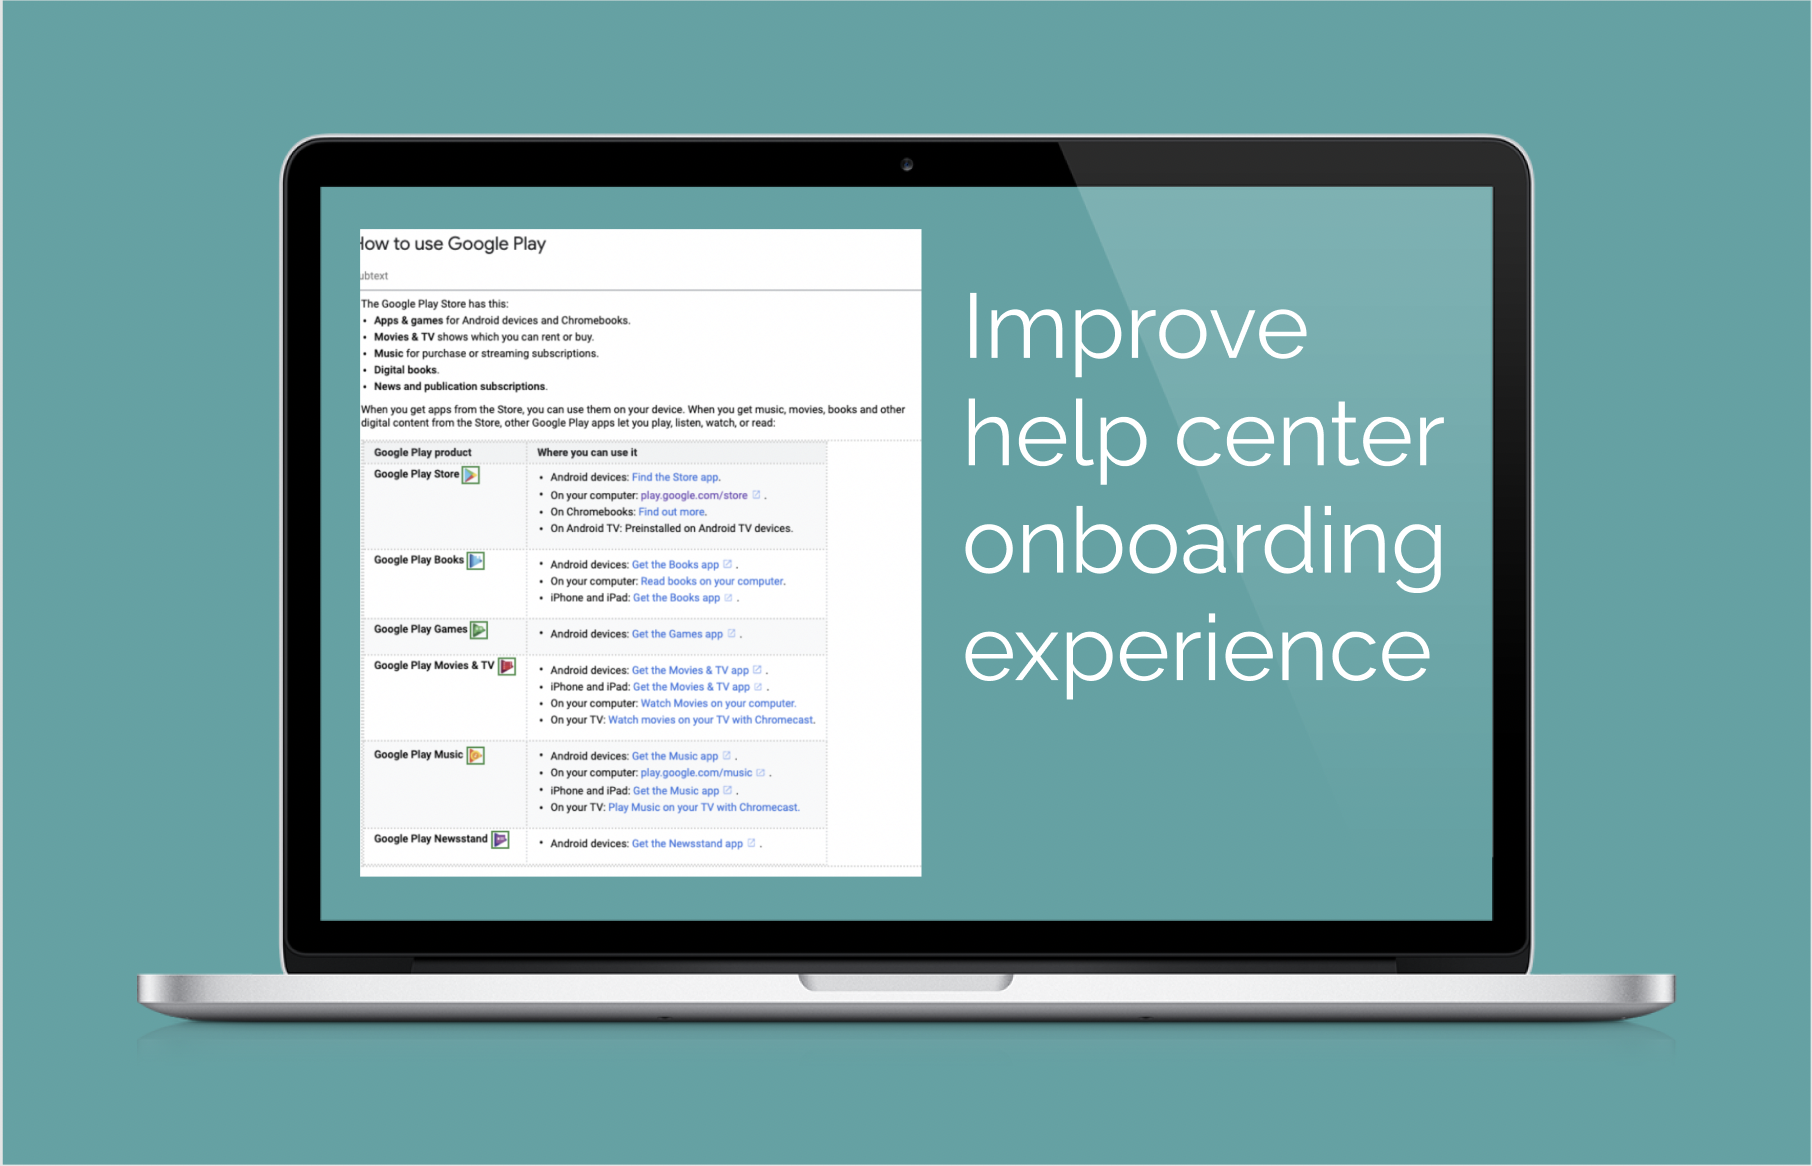 Use content to optimize onboard in help